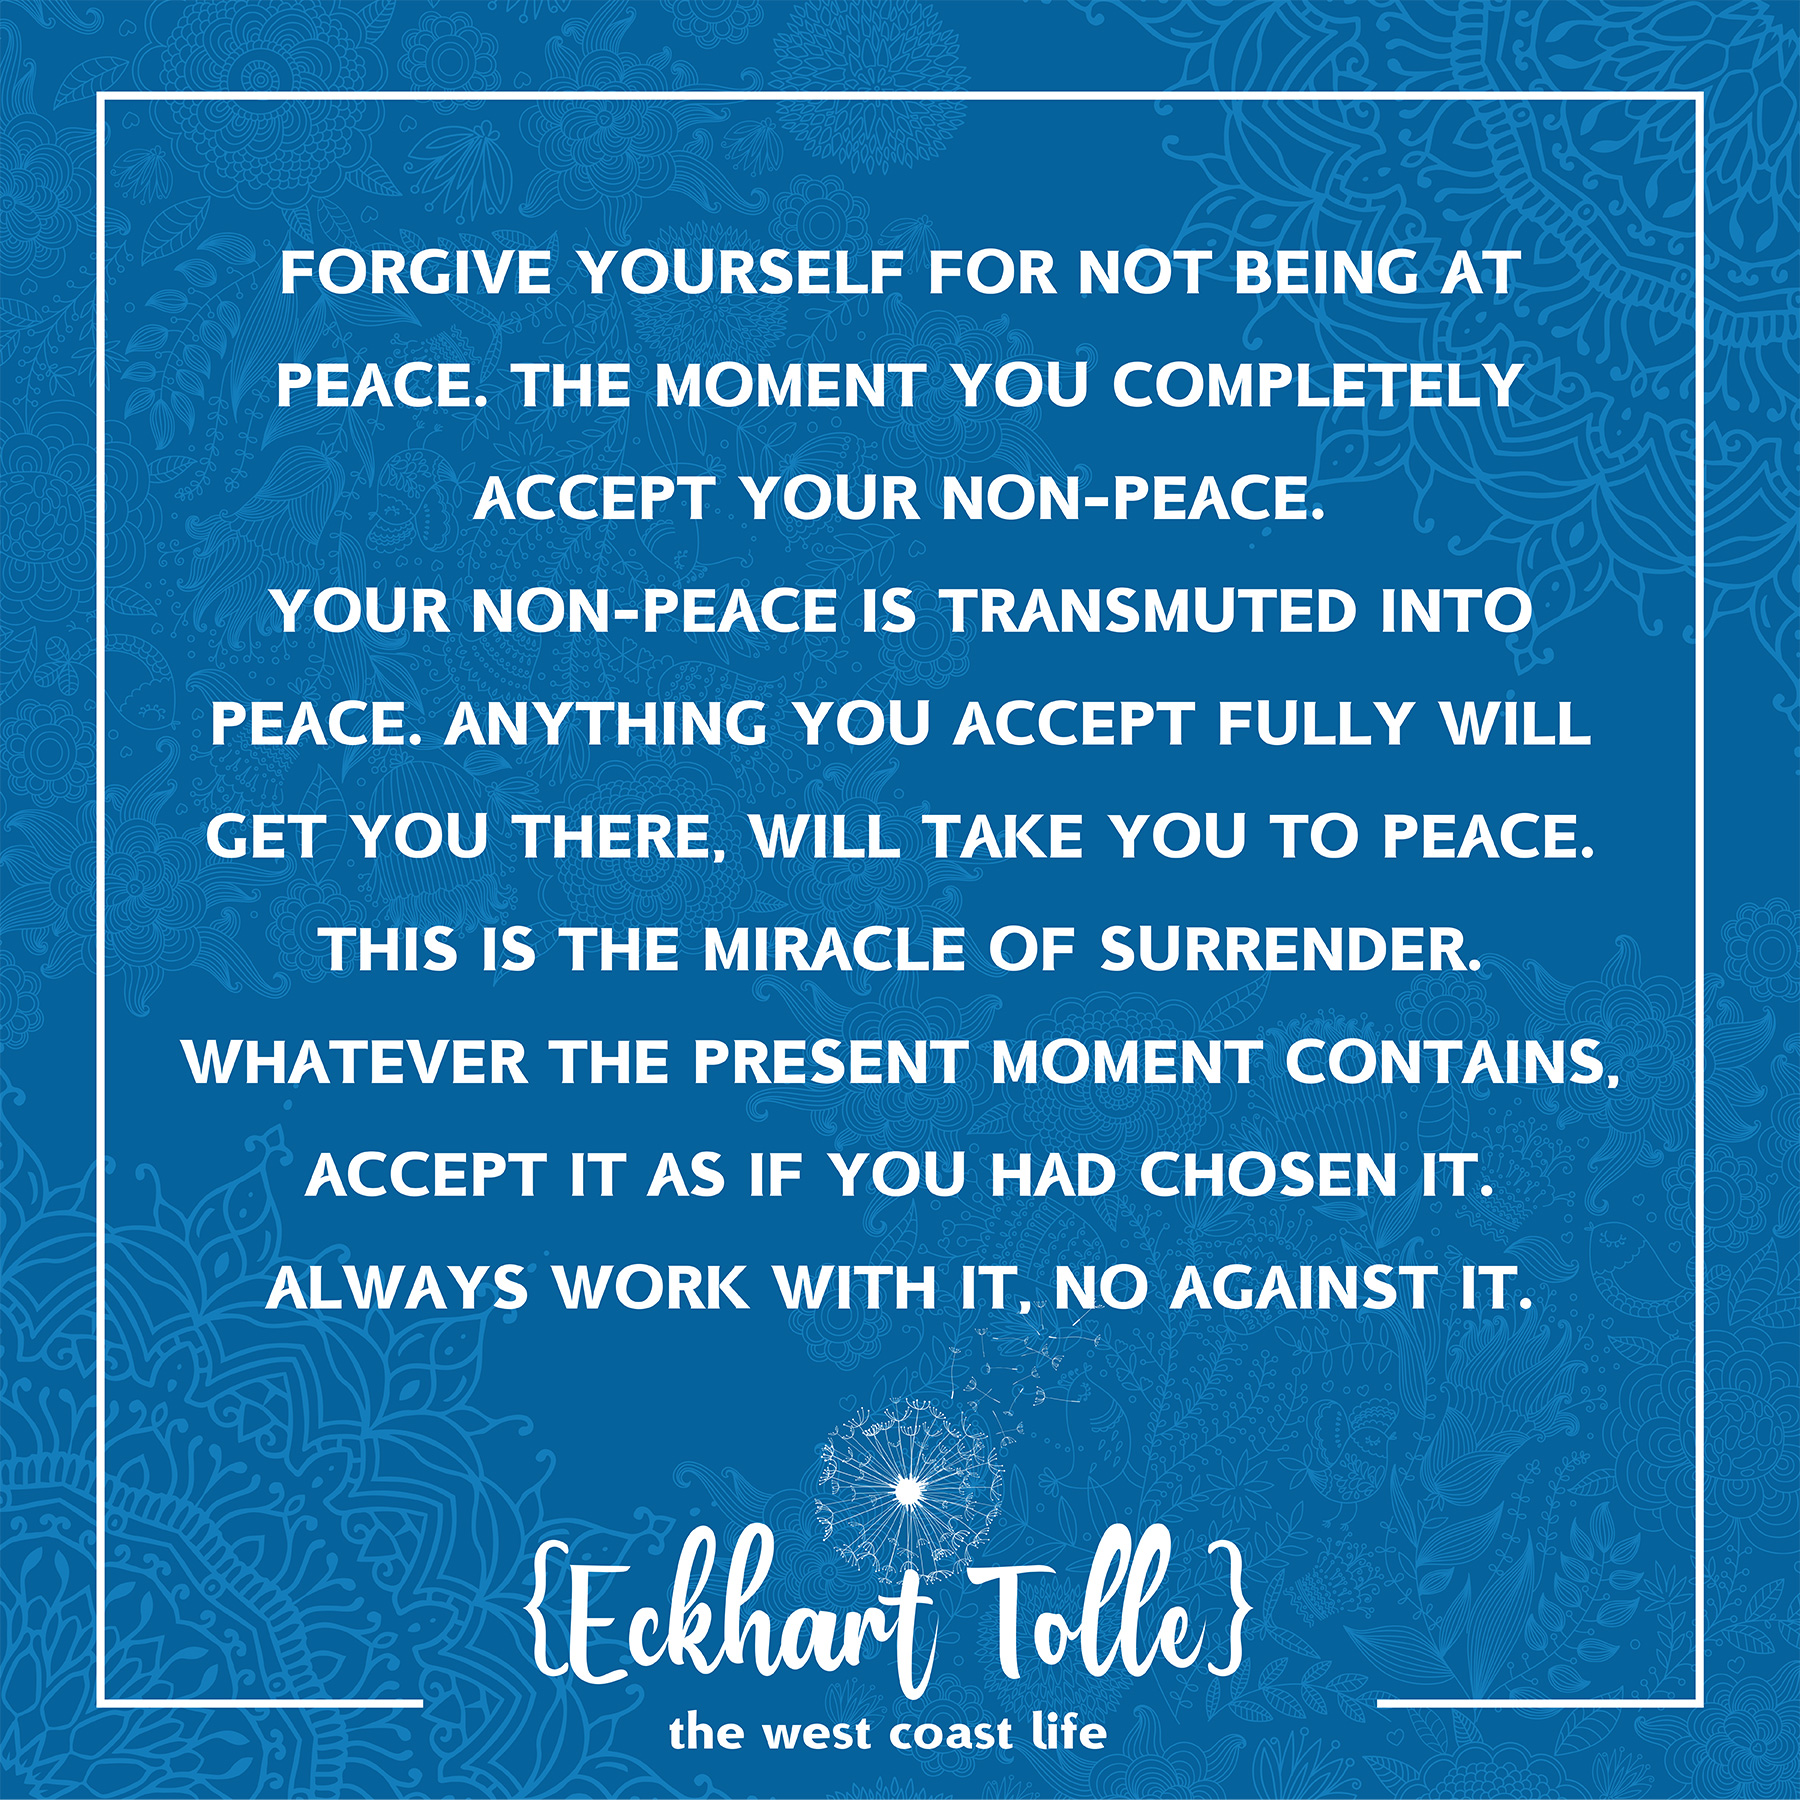 Forgive yourself for not being at peace {Eckhart Tolle}